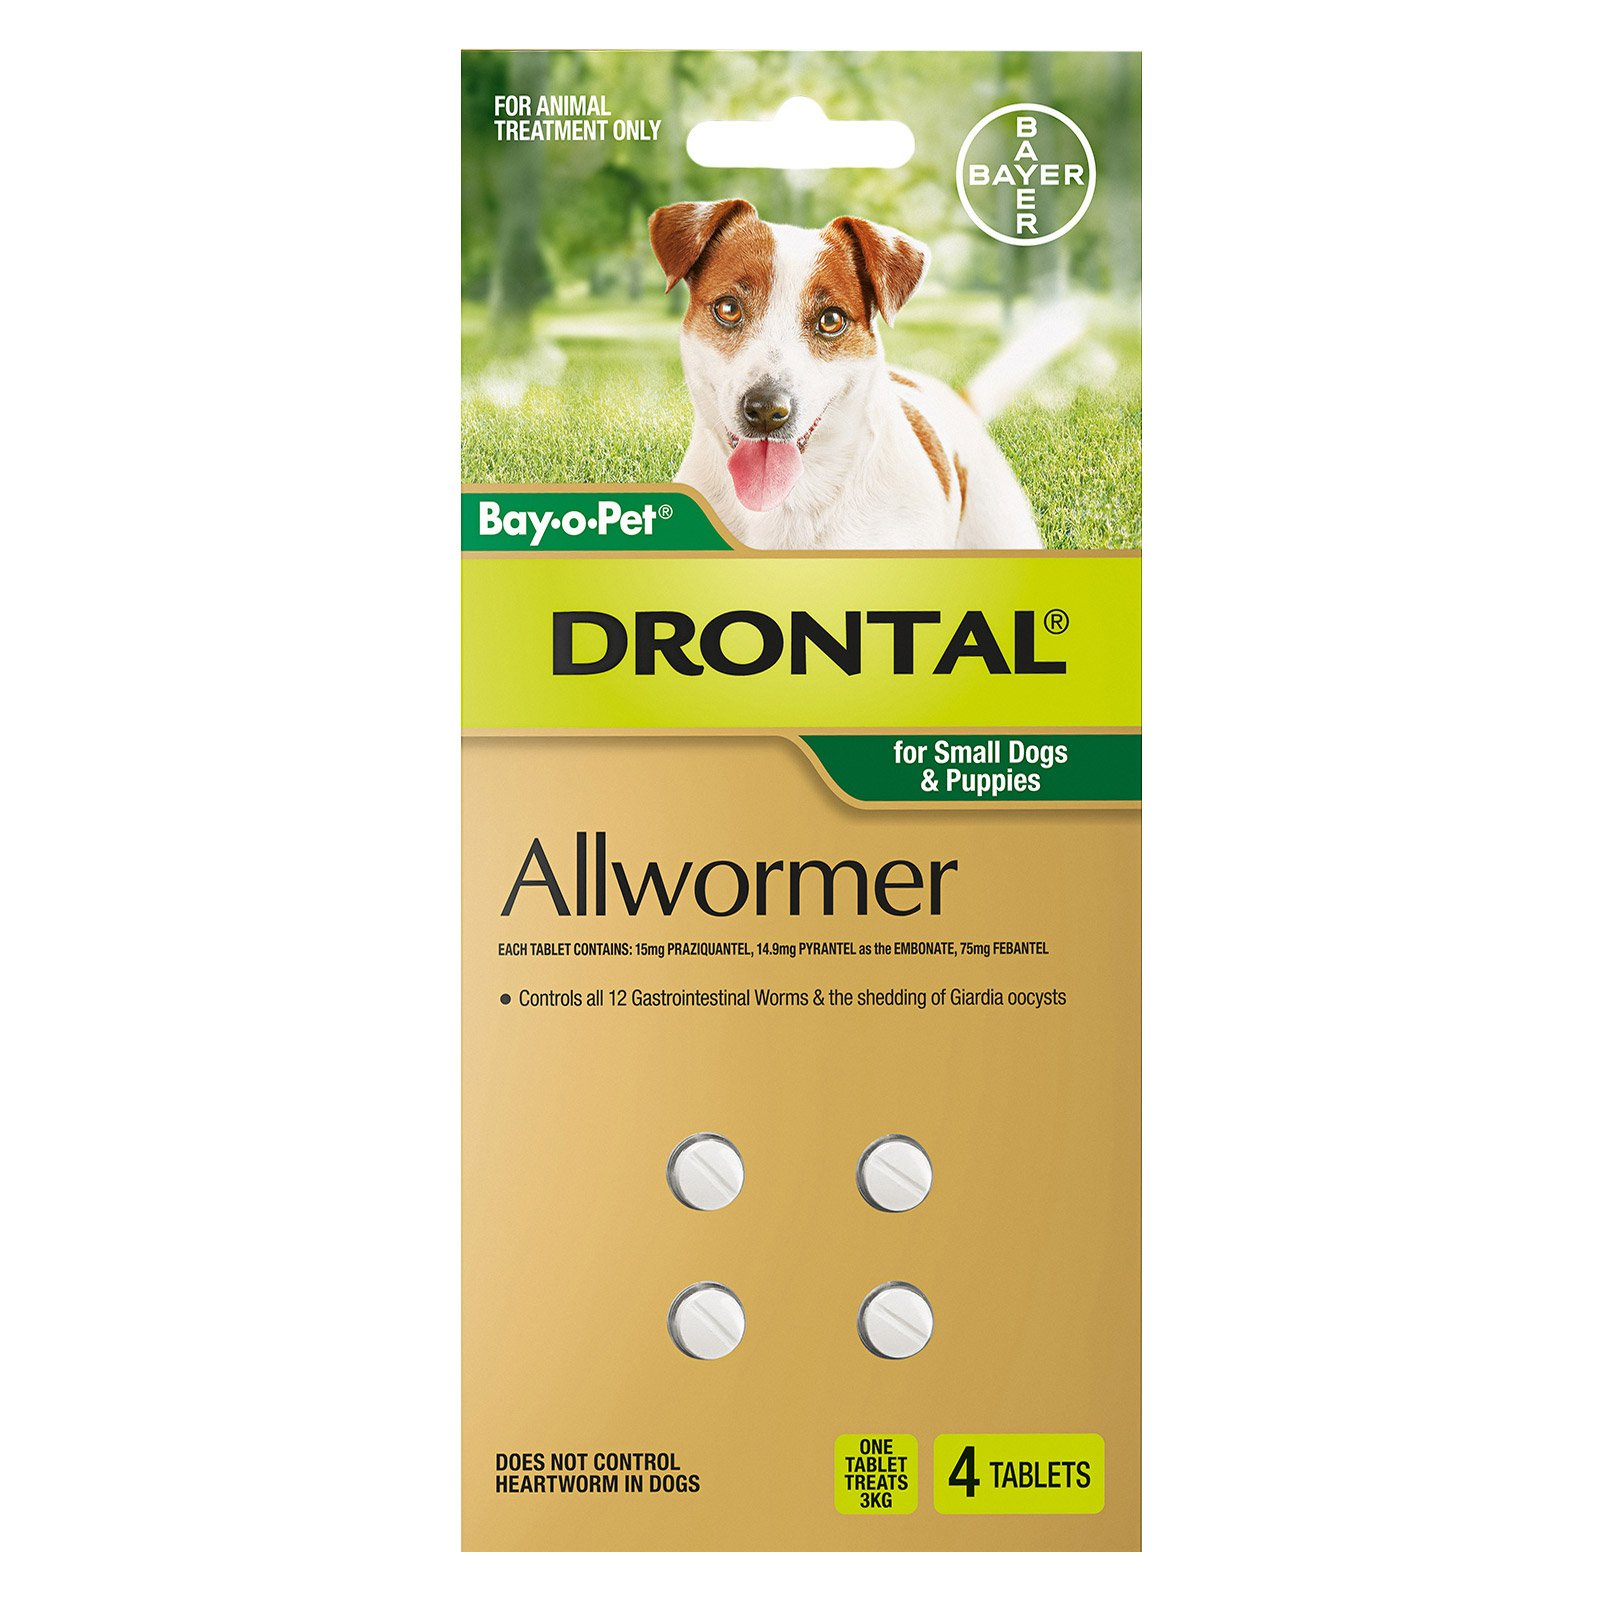 drontal-wormers-tabs-for-dogs-3kg-4-tabs-big.jpg